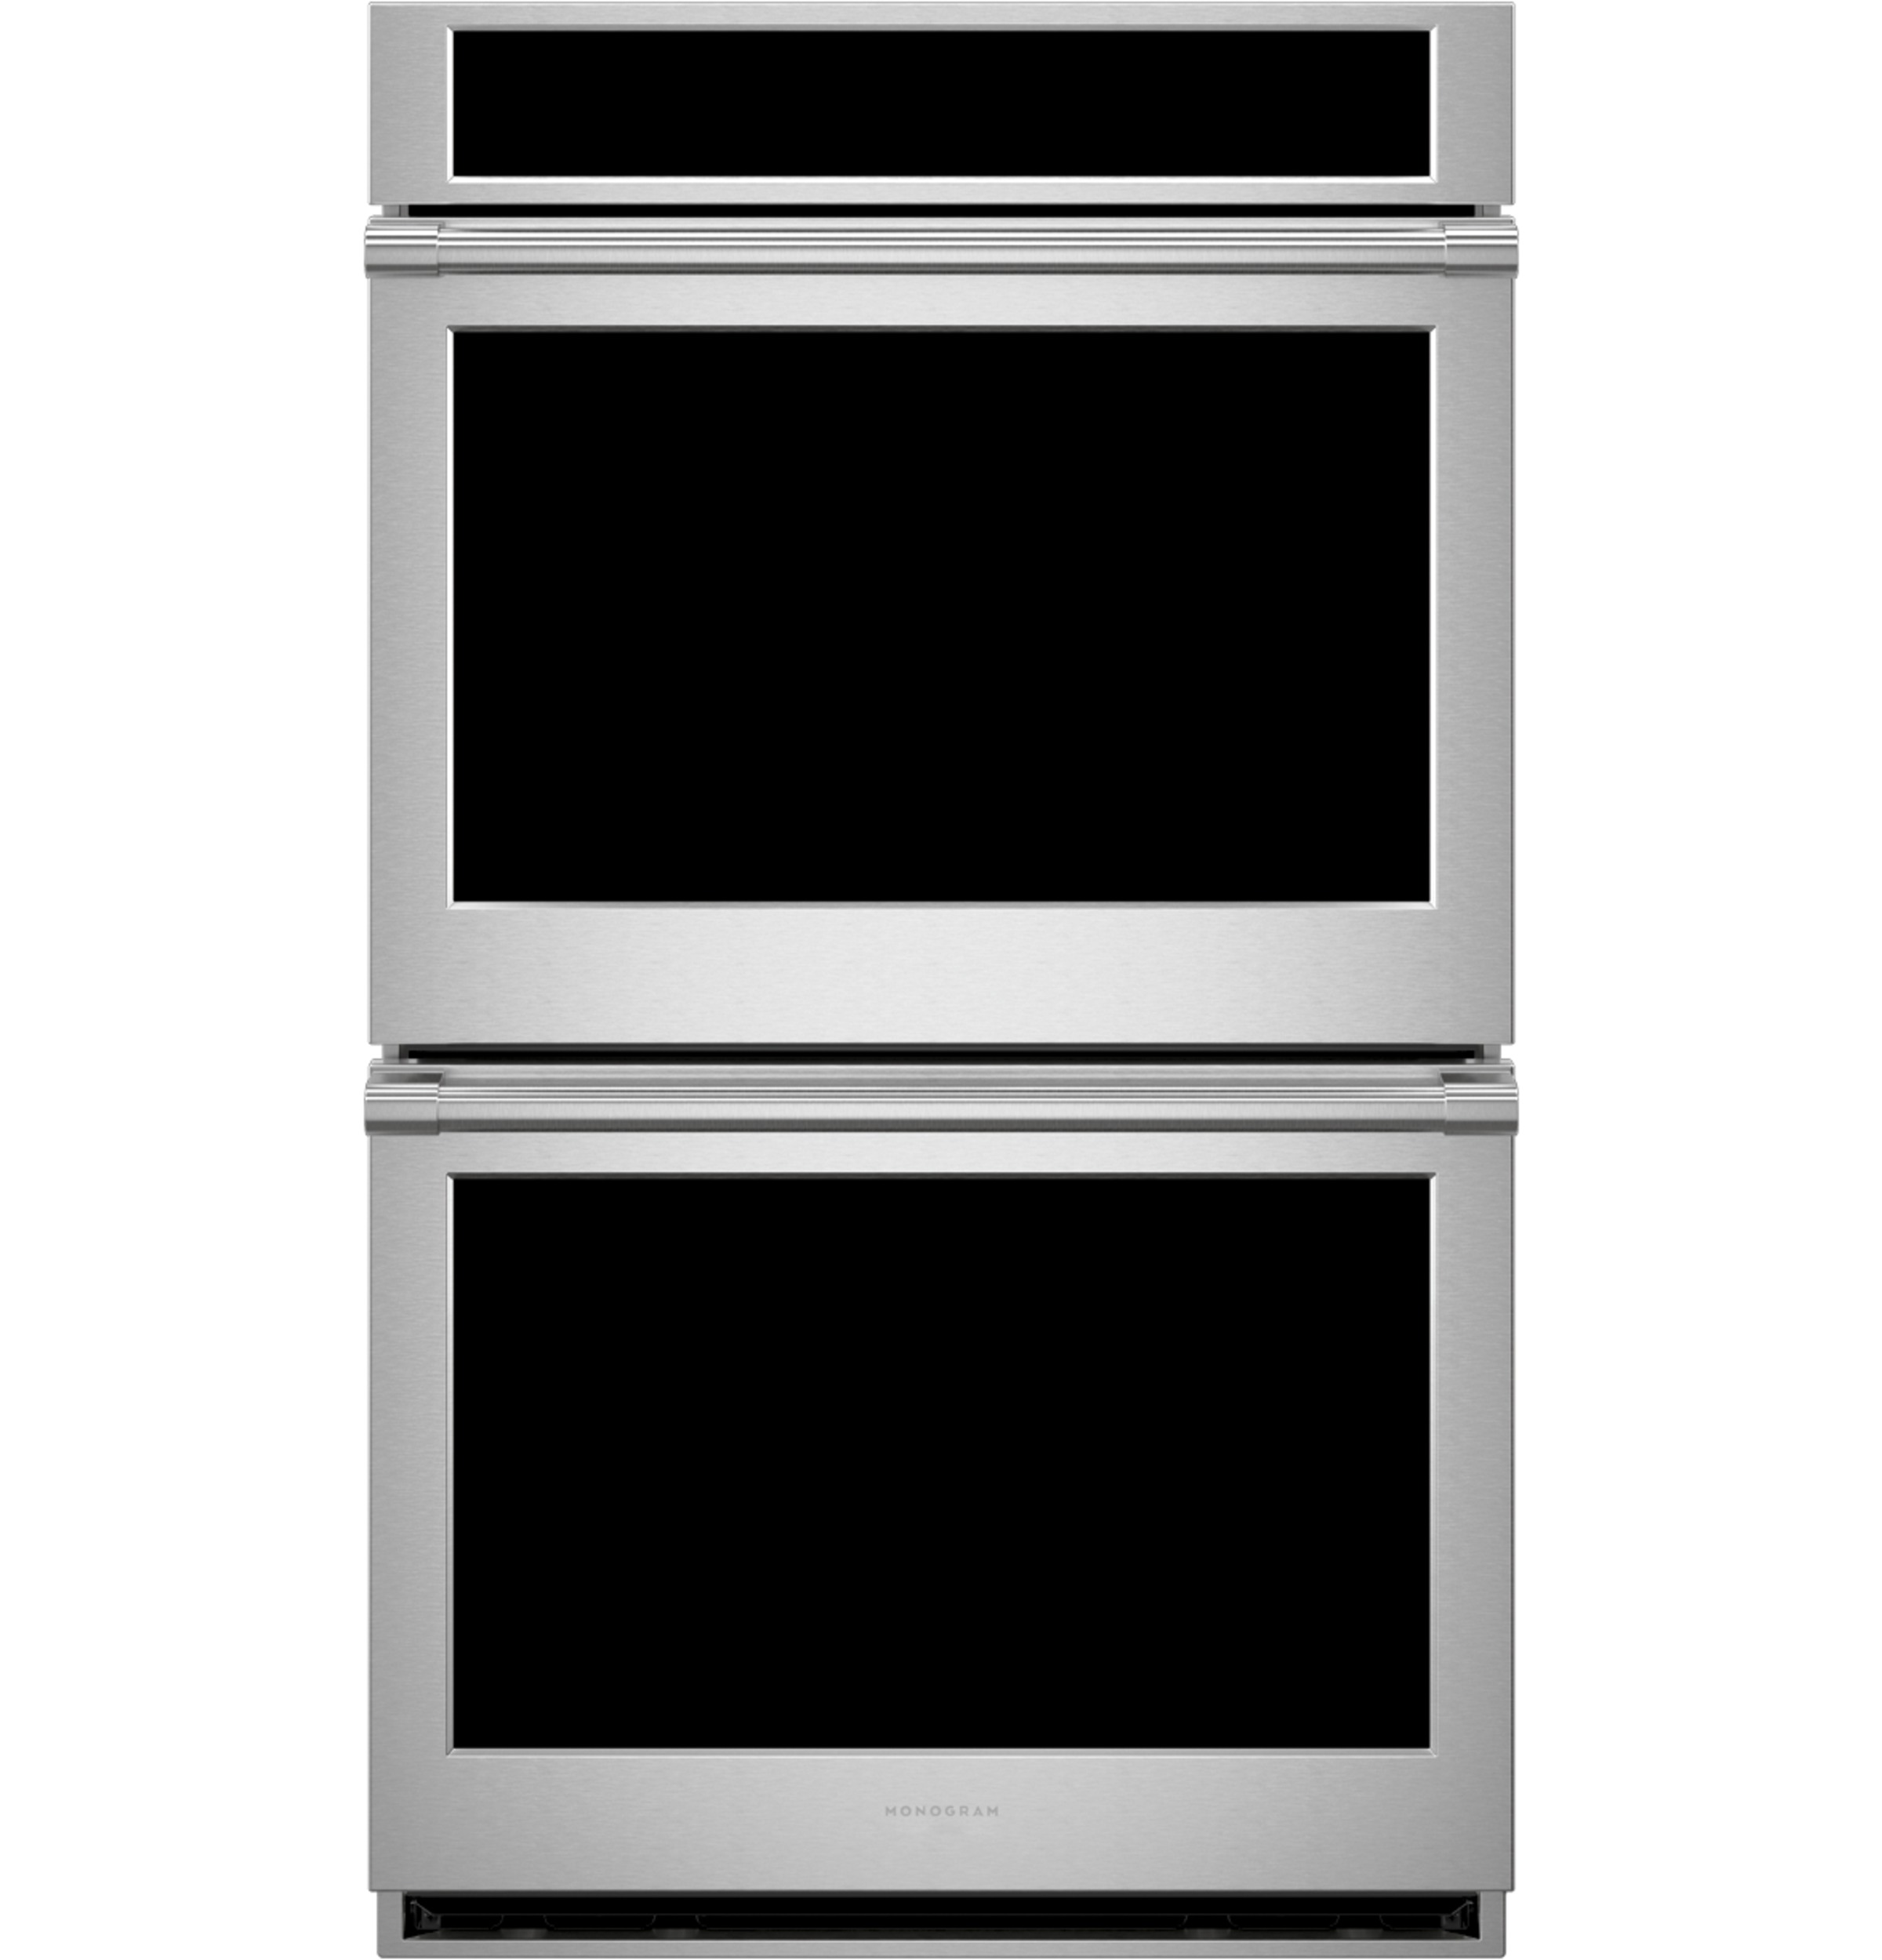 "Monogram Monogram 30"" Smart Electric Convection Double Wall Oven Statement Collection"